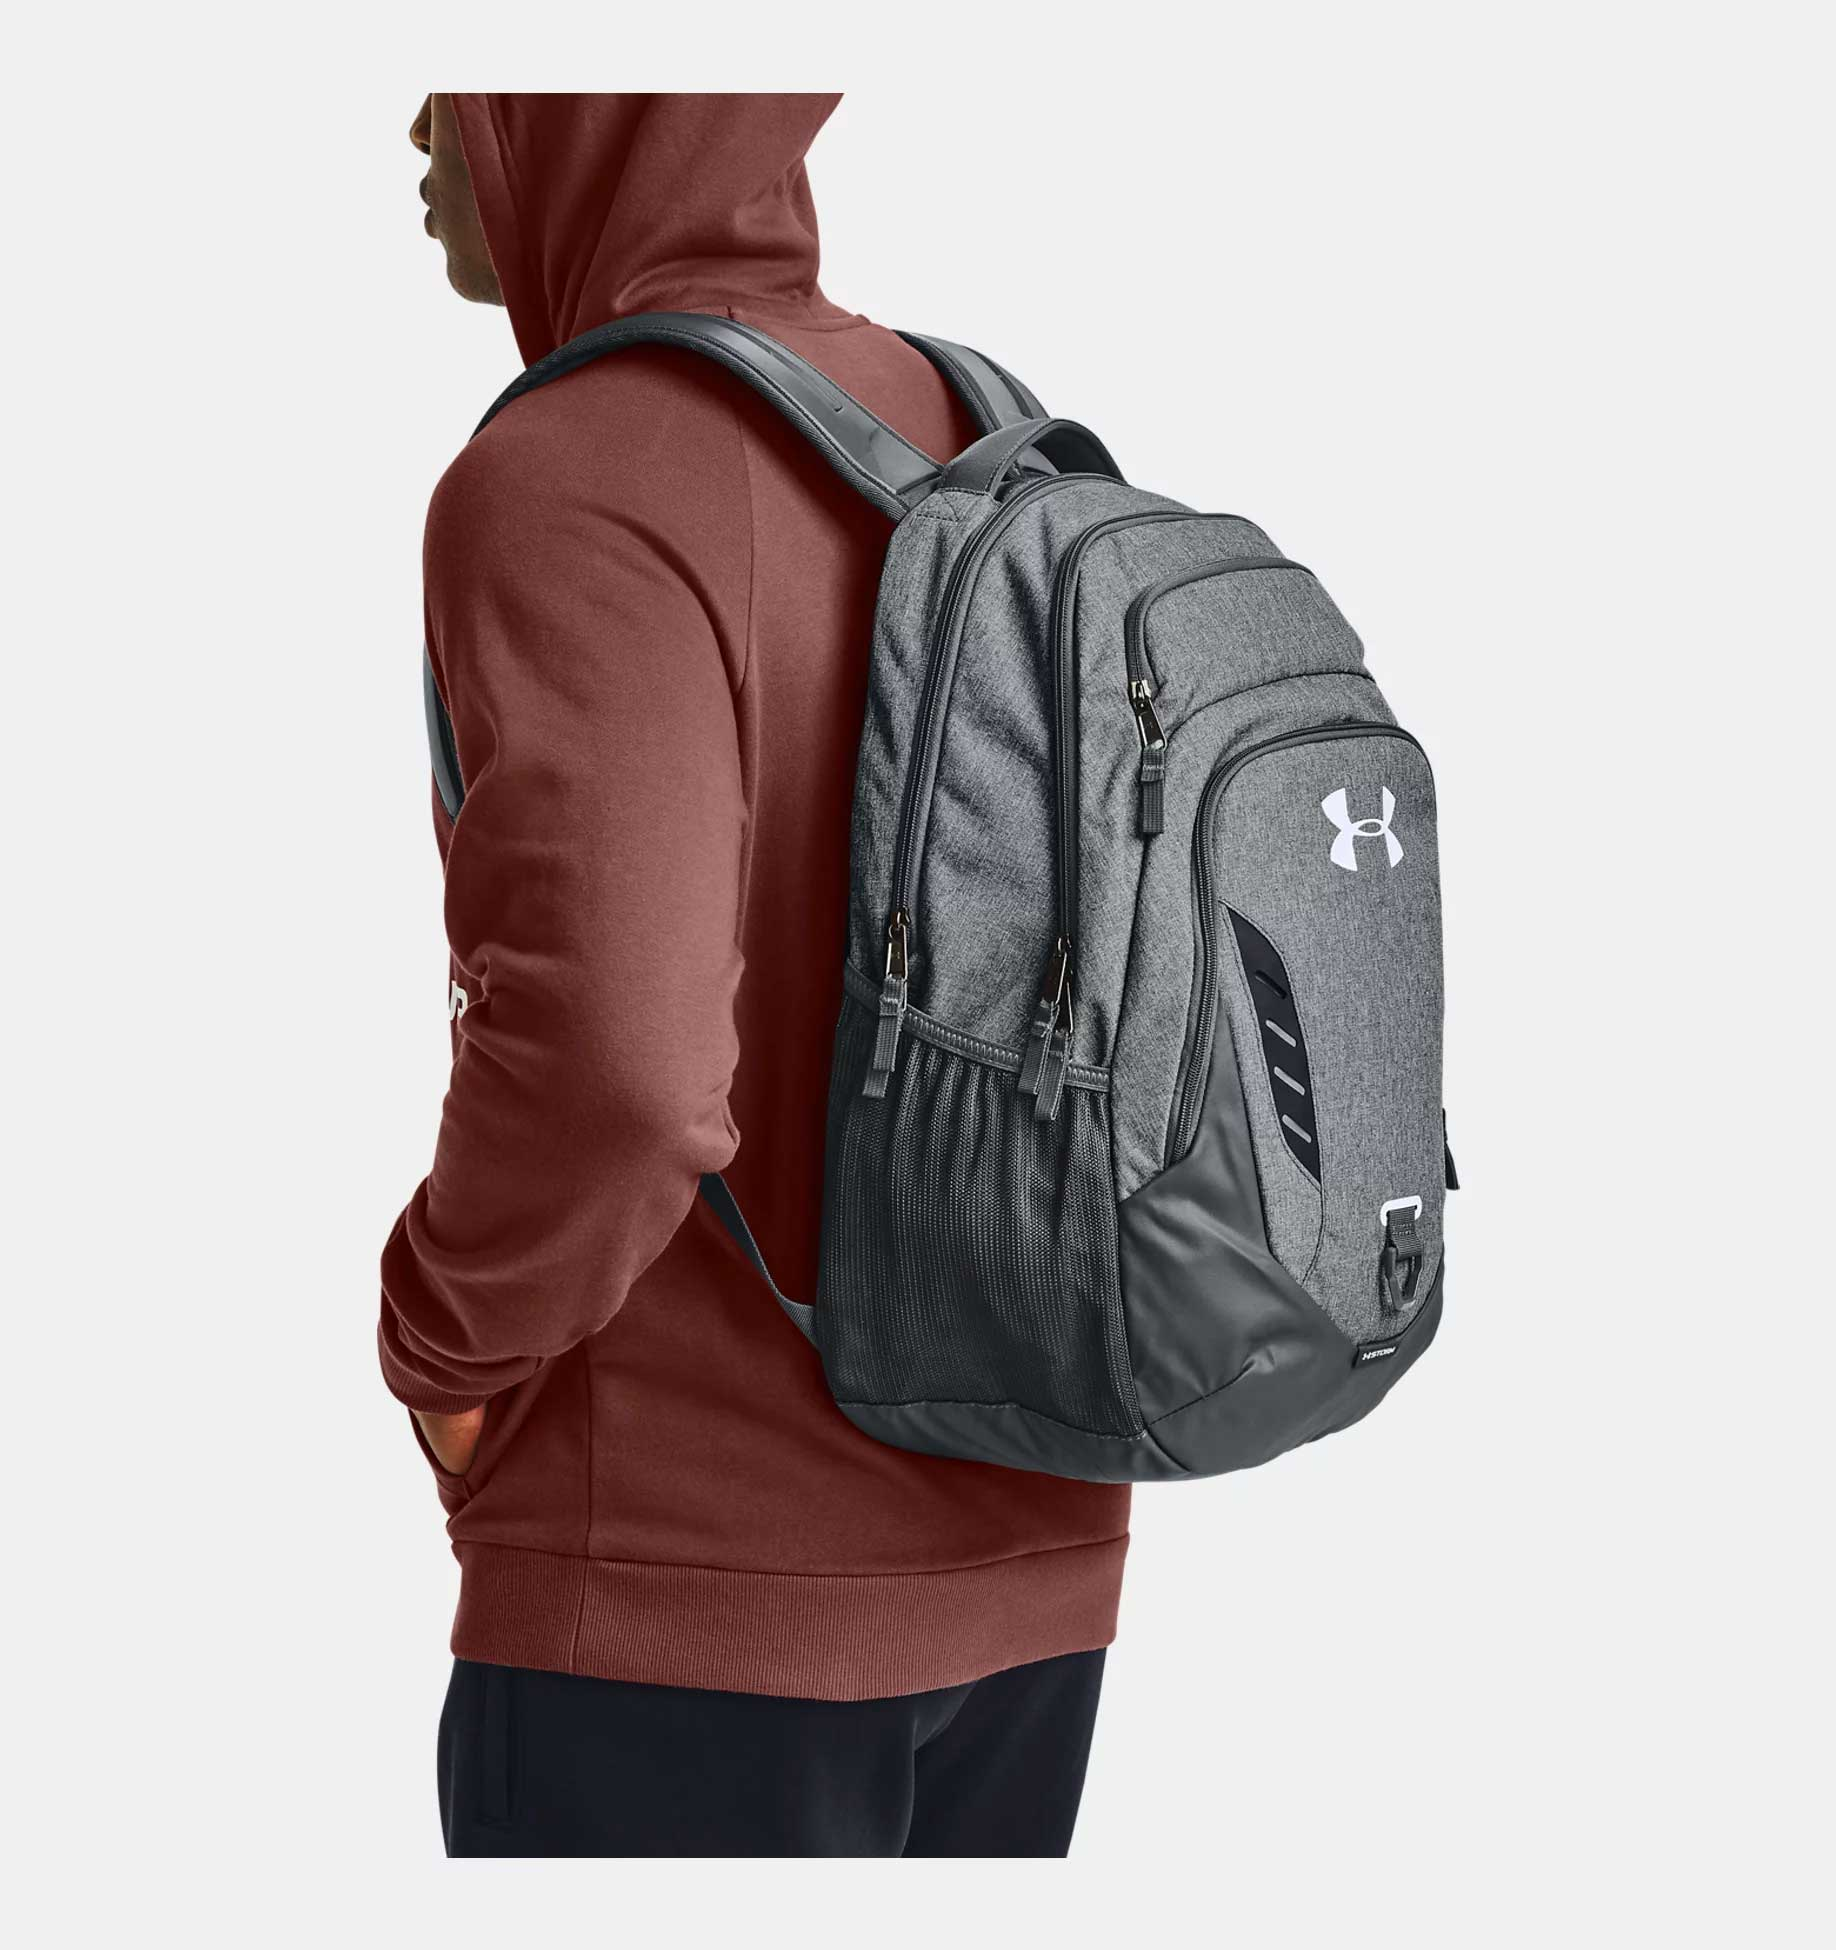 balo-the-thao-under-armour-ua-gameday-backpack-wolf-grey-1316573-hang-chinh-hang